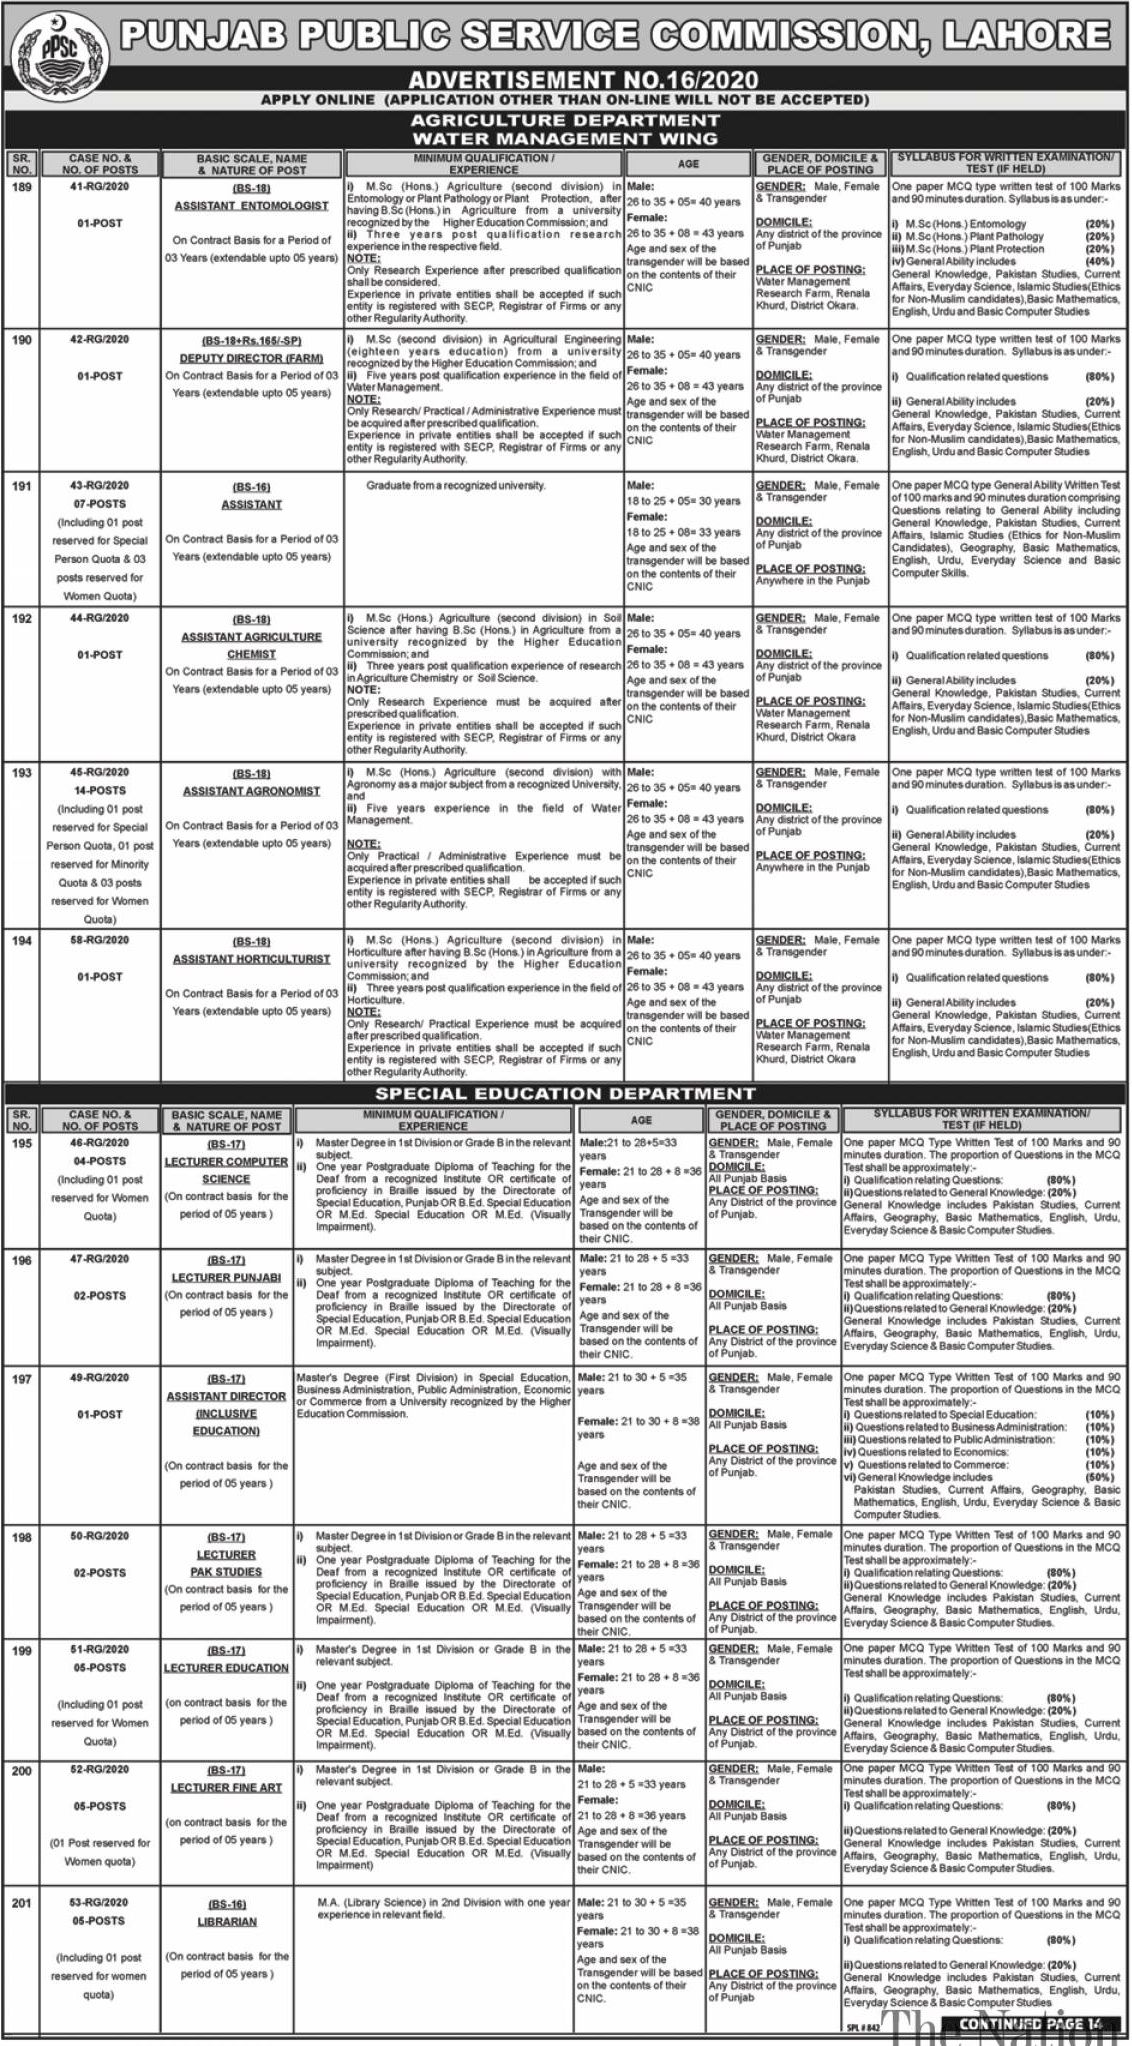 PPSC Jobs June 2020 Page - 1